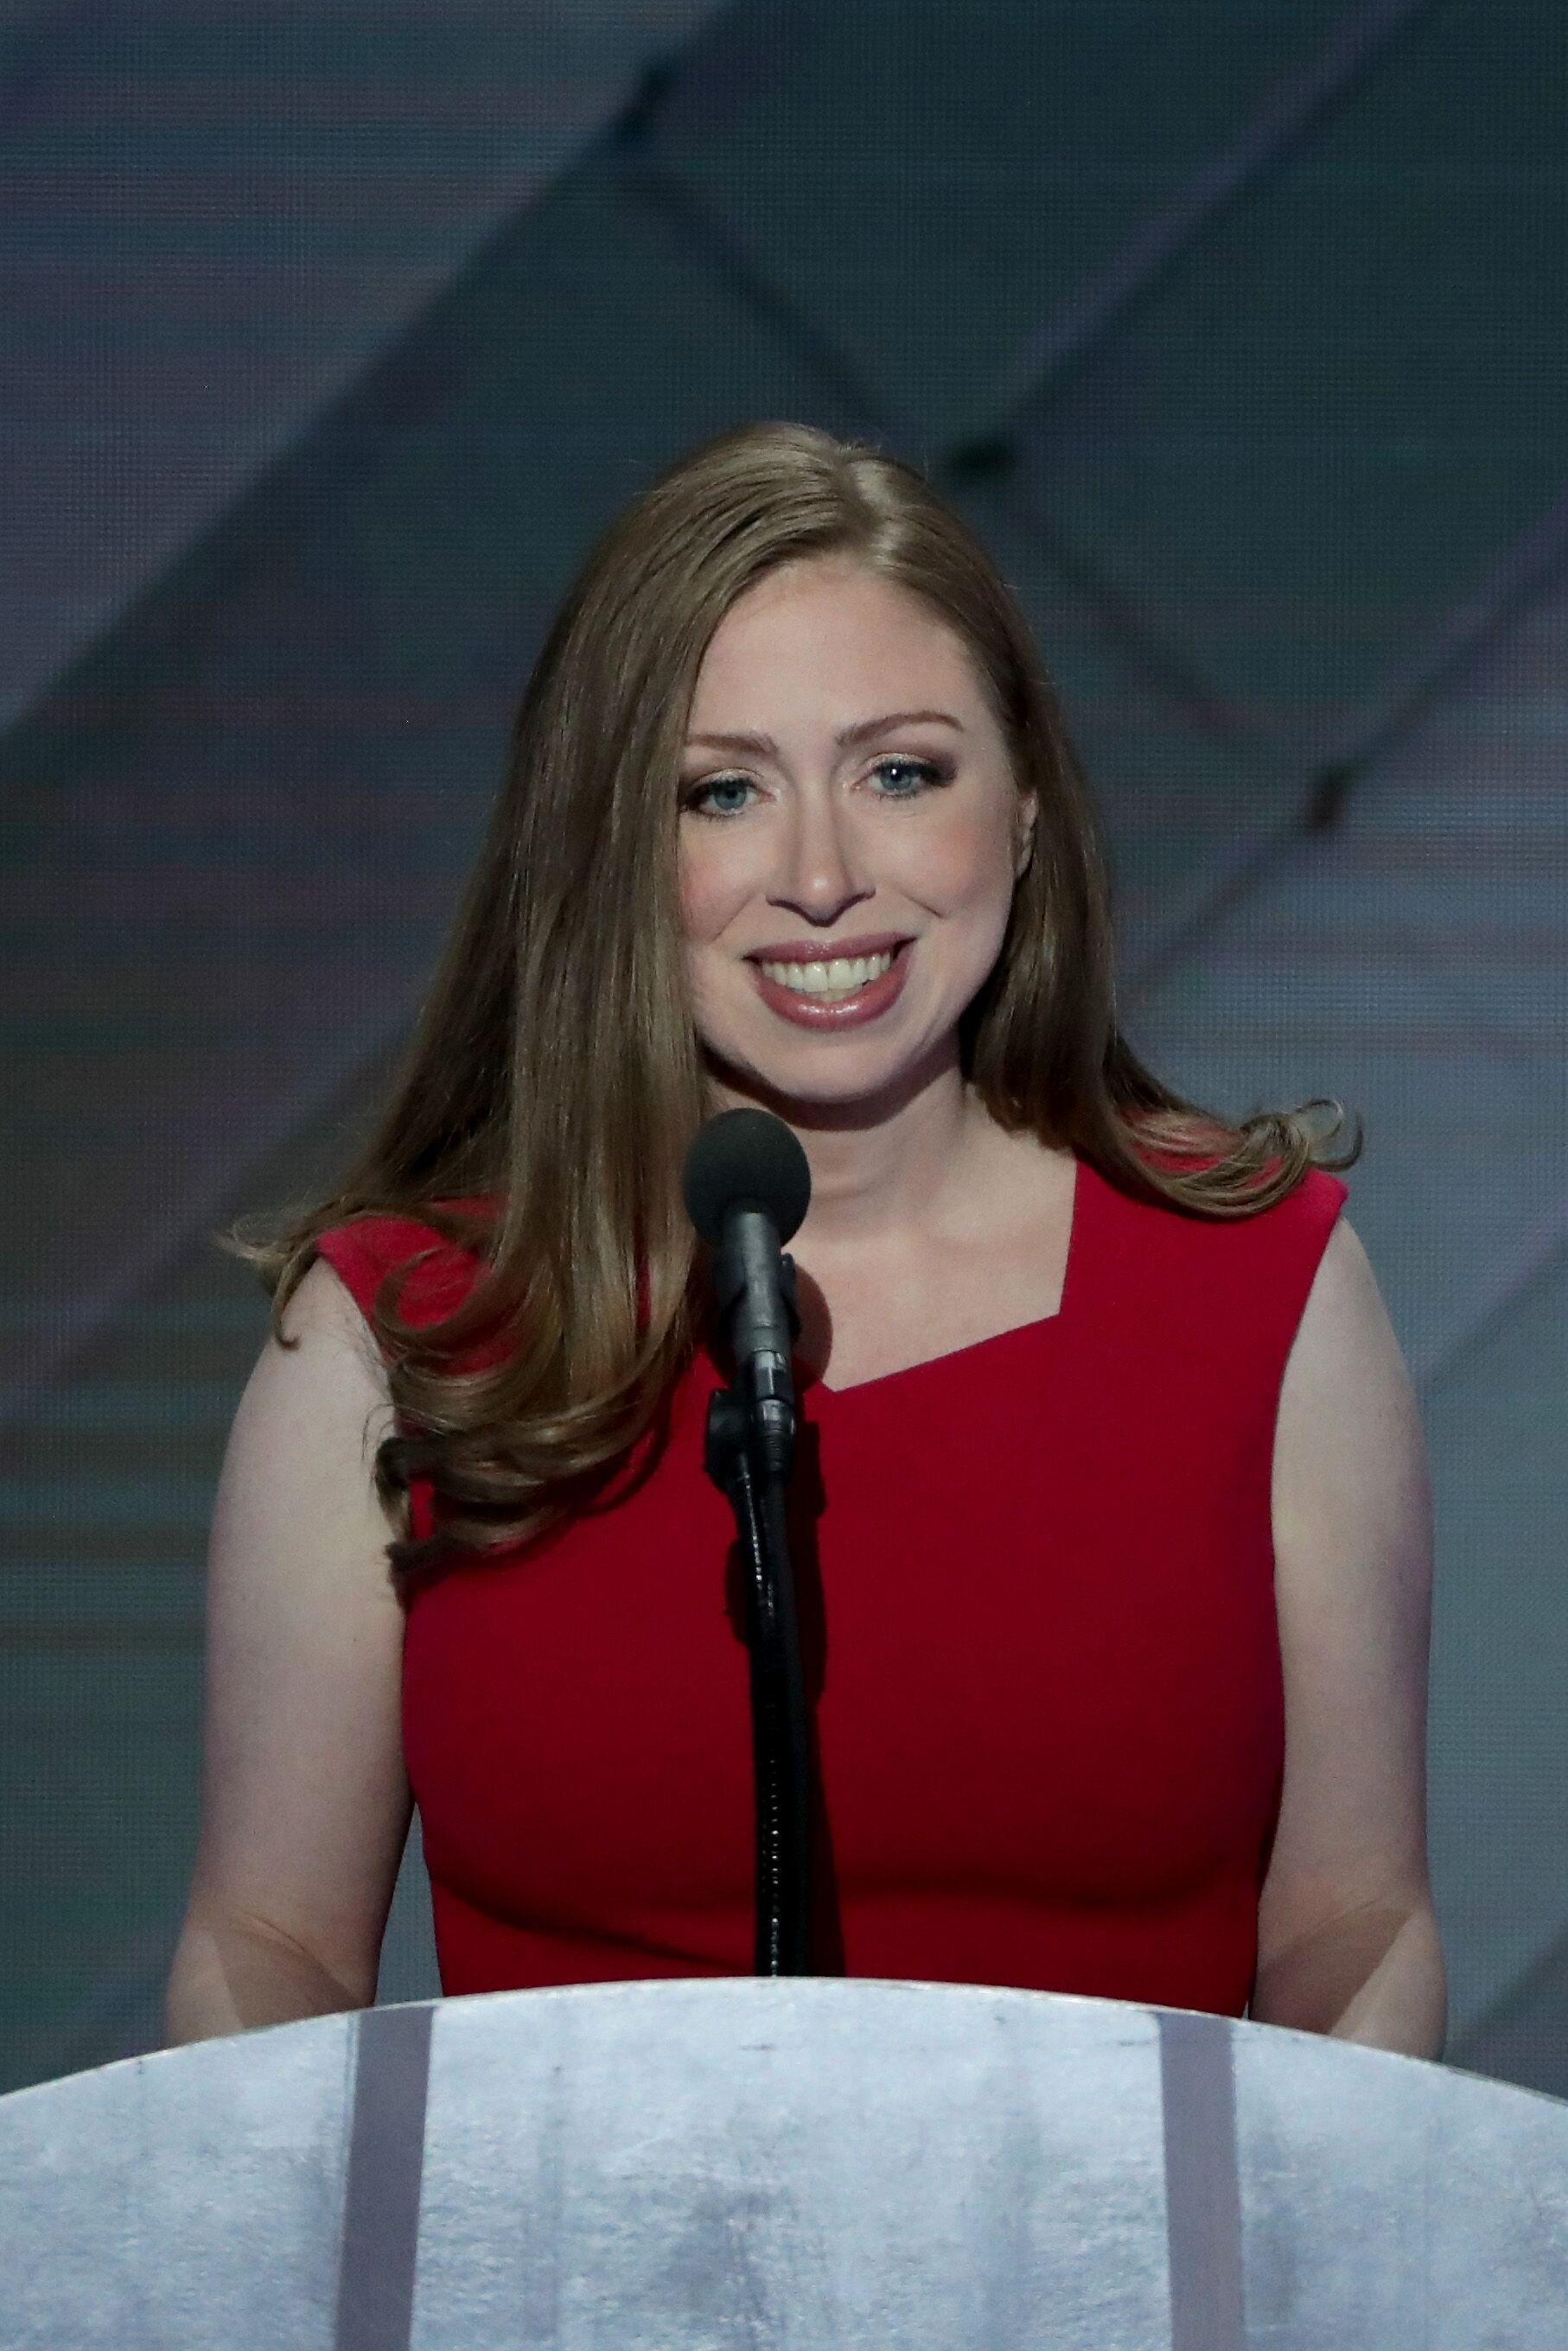 Chelsea Clinton introduces her mother, Democratic presidential nominee Hillary Clinton in Wells Fargo in 2016 | Source: Getty Images